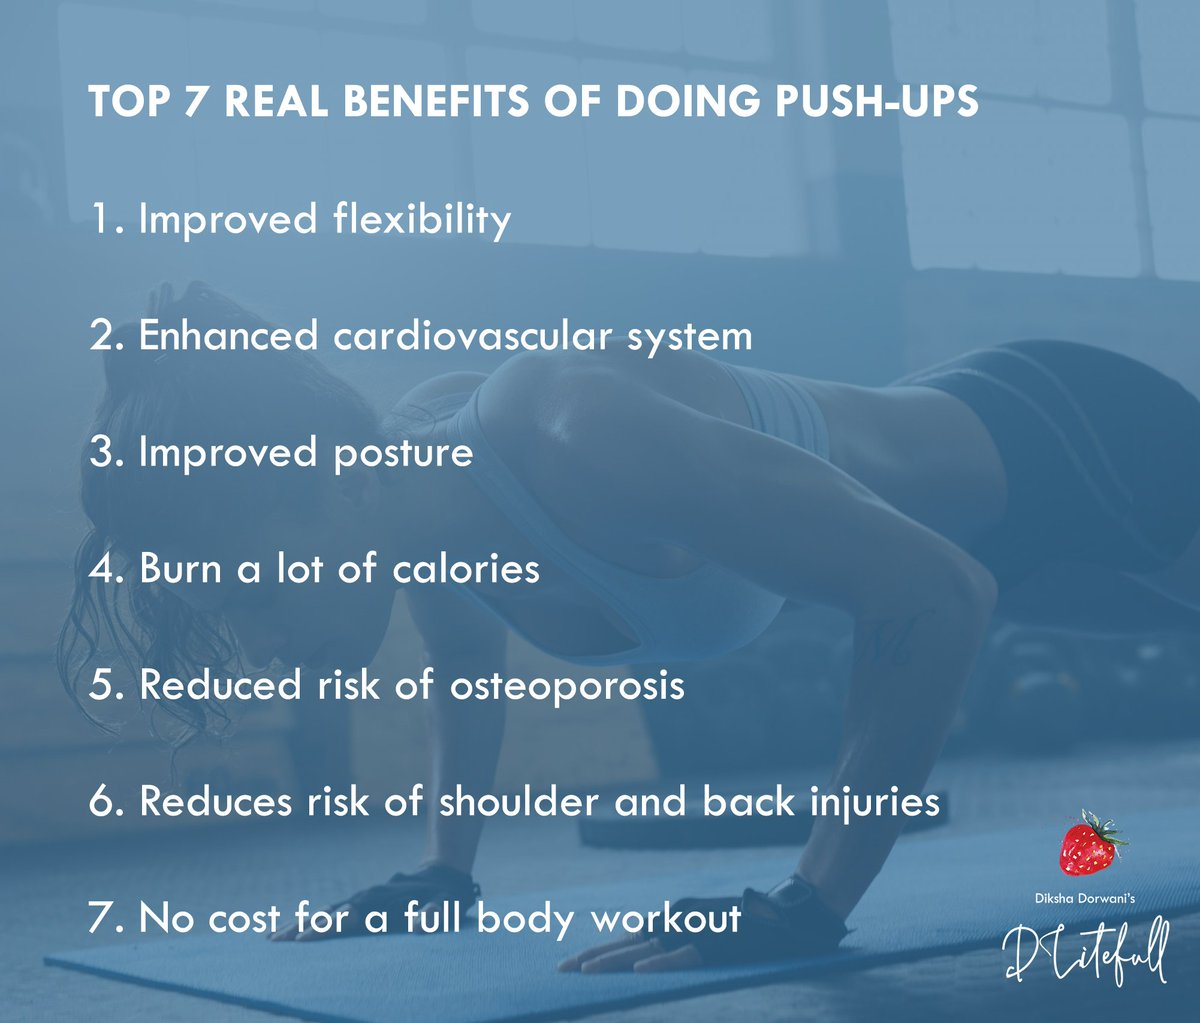 Push-ups are one of the most beneficial workouts, for both your body and mind. It helps you achieve a tight and toned upper body with a strong core. Here are 7 proven benefits of doing push-ups...  #pushups #workout #bodytoning #upperbody #core #corestrength #pushupbenefitspic.twitter.com/56NOeai2zp